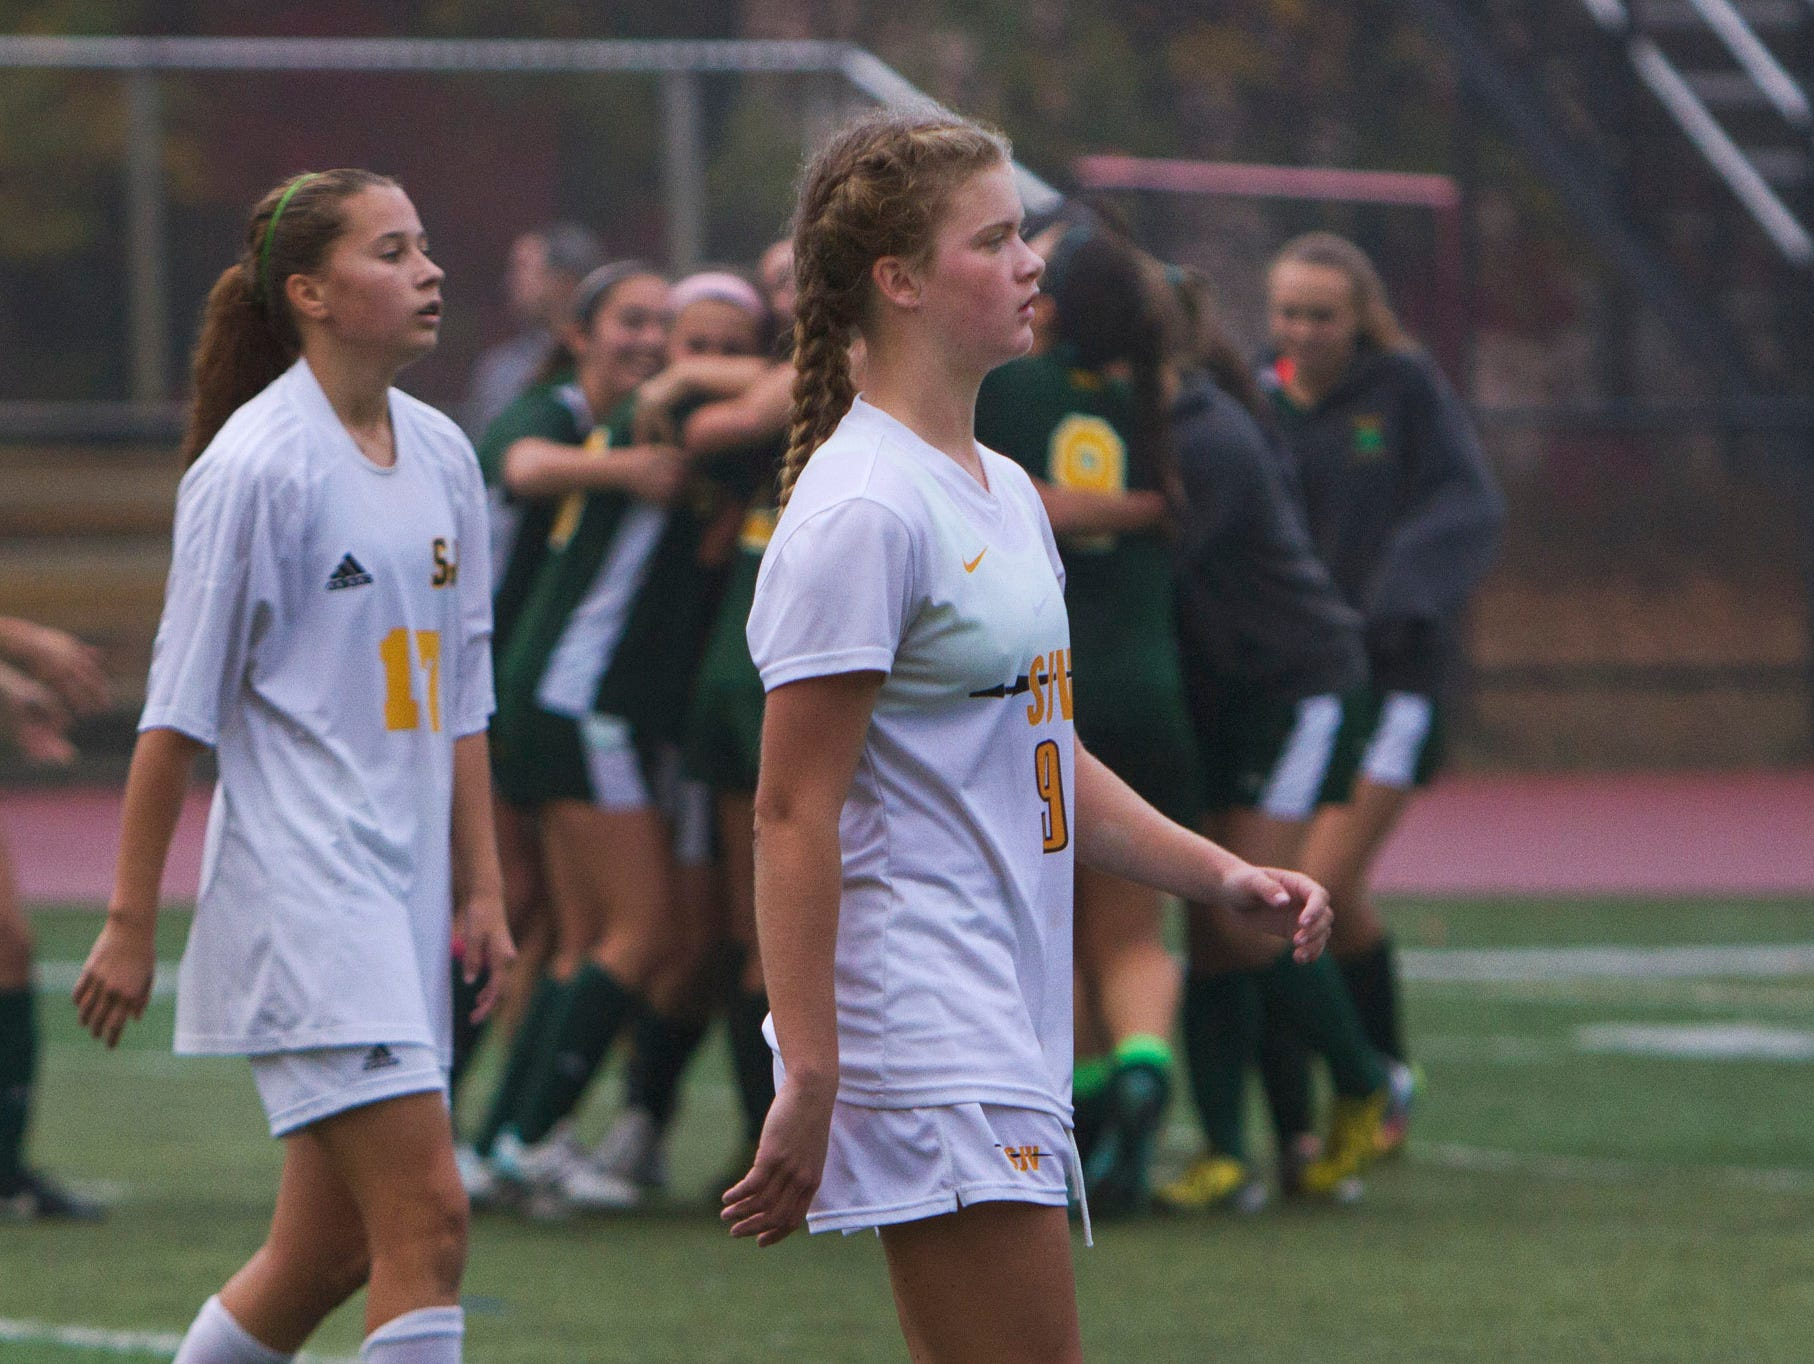 St. John Vianney players try to ignore the RBC celebration going on behind them as they lose 1-0 in state playoff game. Red Bank Catholic vs St. John Vianney in NJSIAA State Soccer tournament